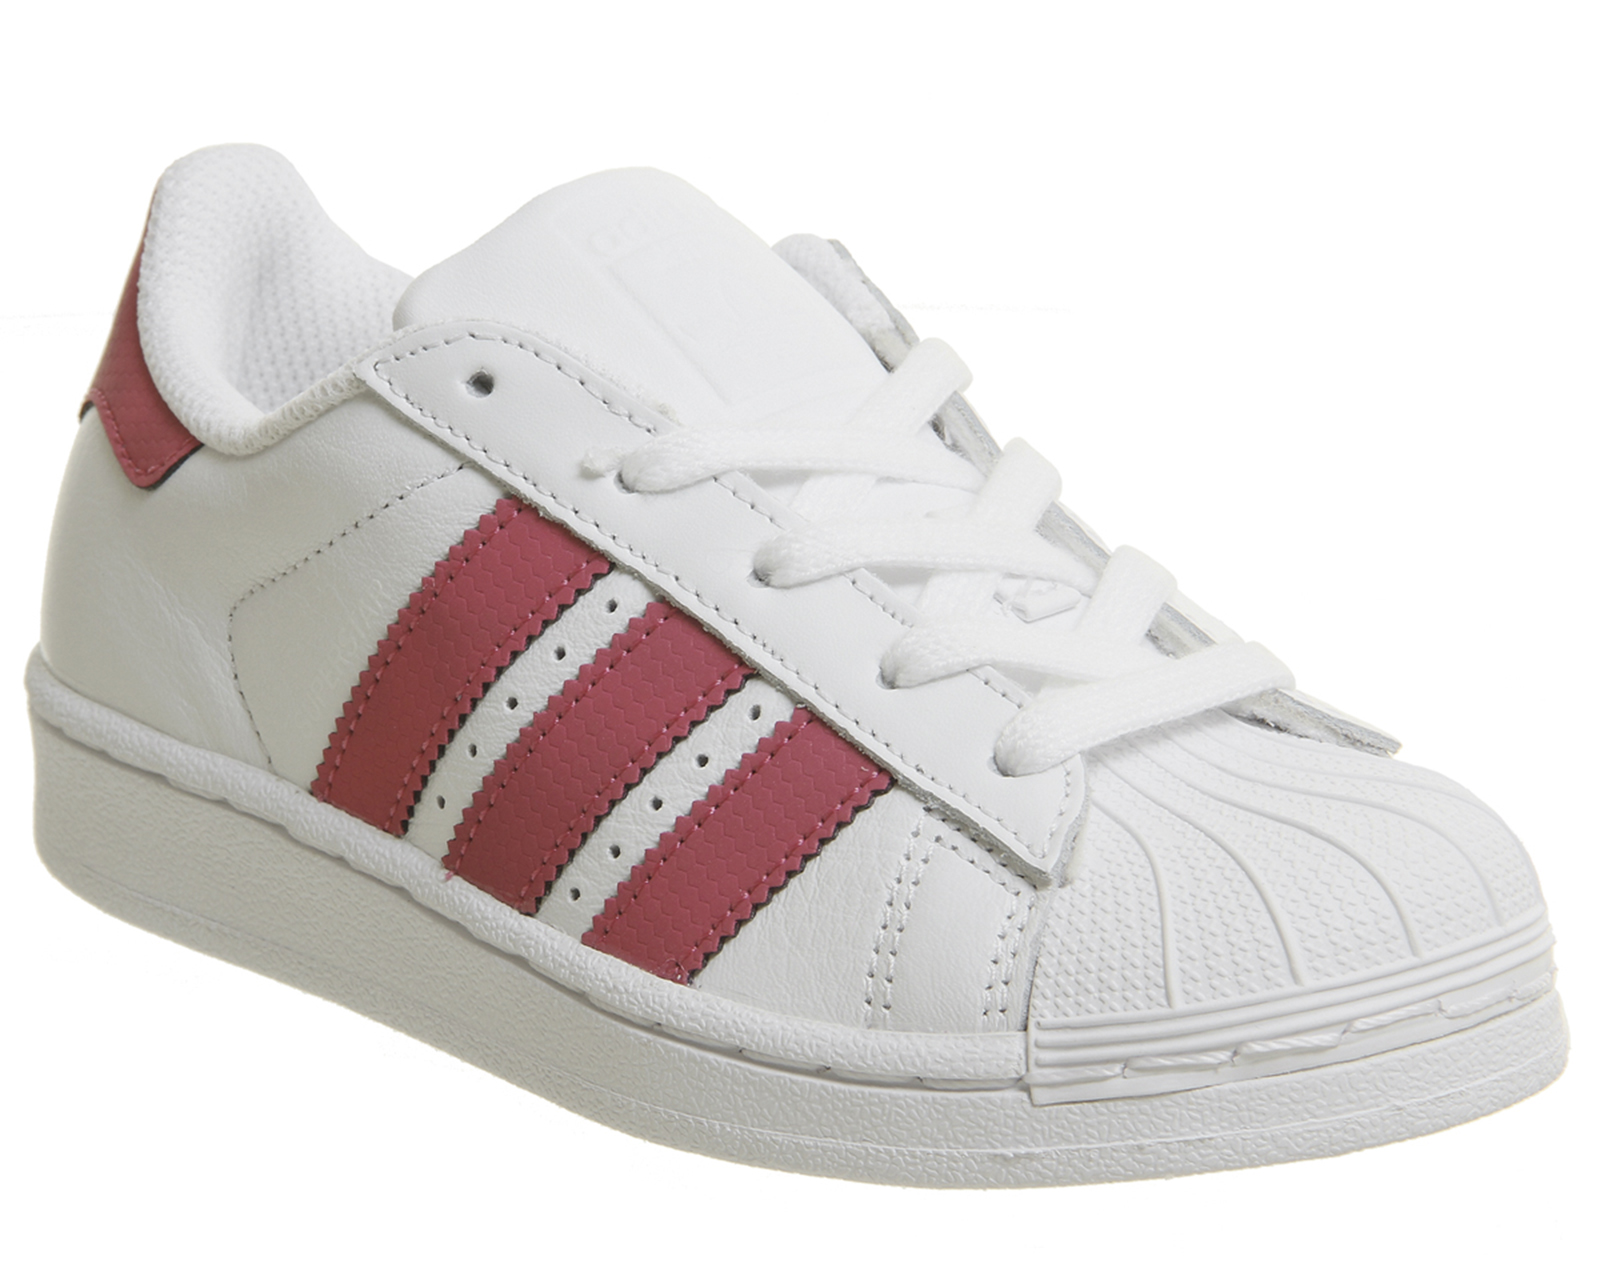 adidas superstar for kids